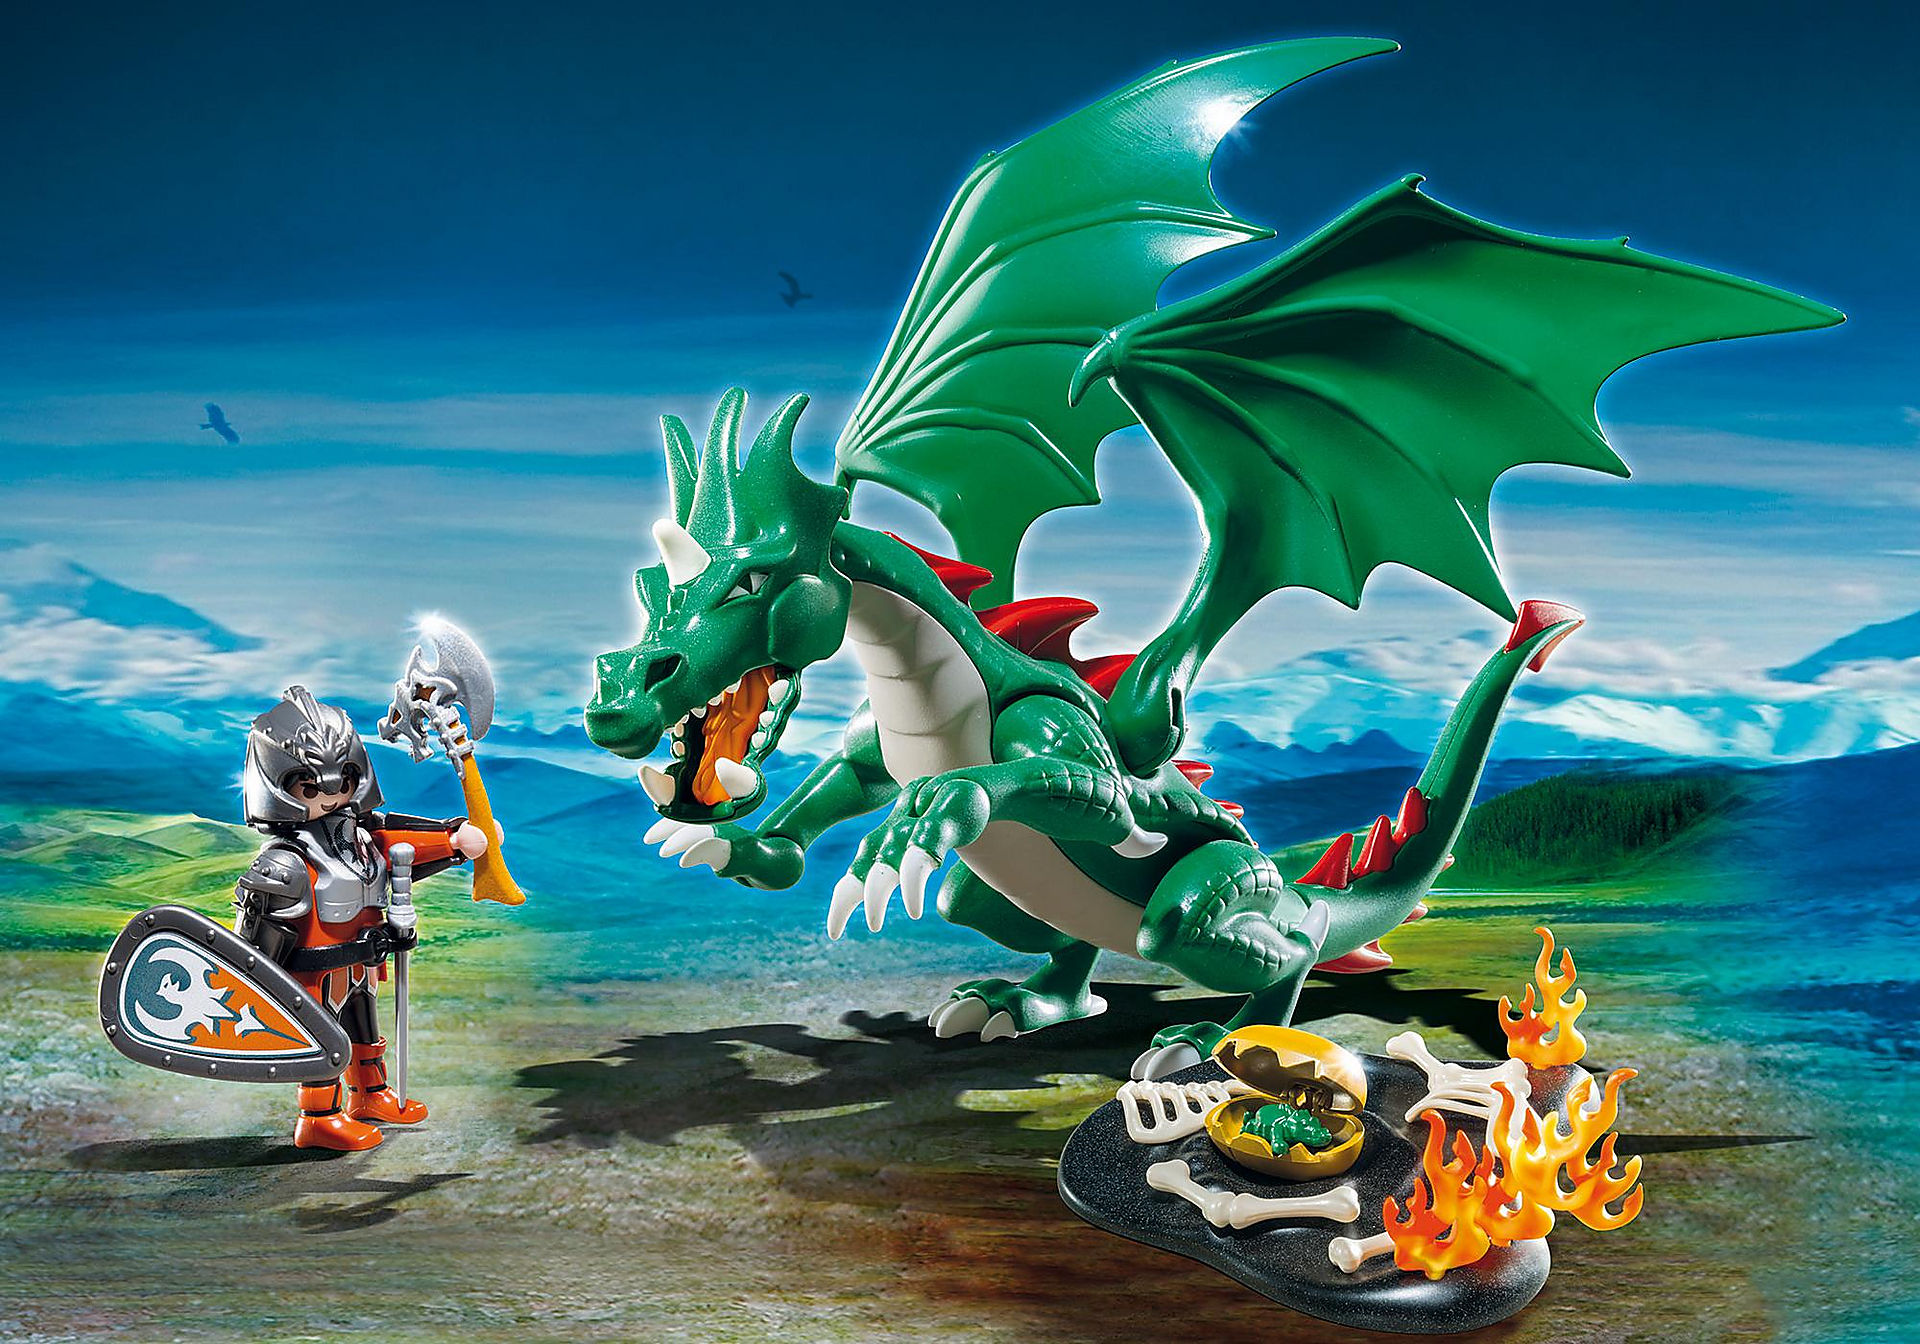 http://media.playmobil.com/i/playmobil/6003_product_detail/Chevalier avec grand dragon vert